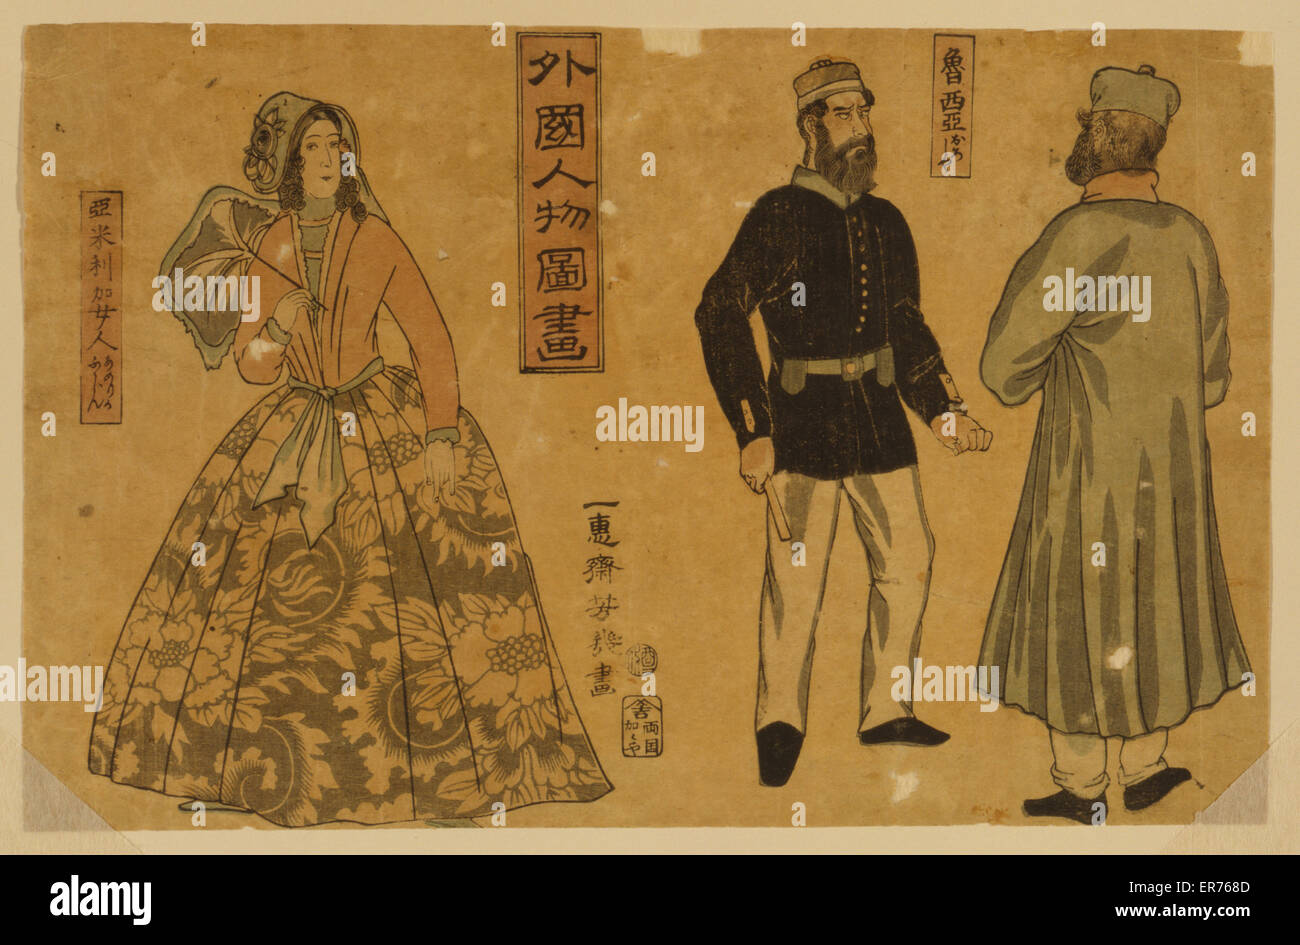 Portraits of foreigners - Russians, American lady. Japanese print shows the clothing styles of Russian men, and - Stock Image